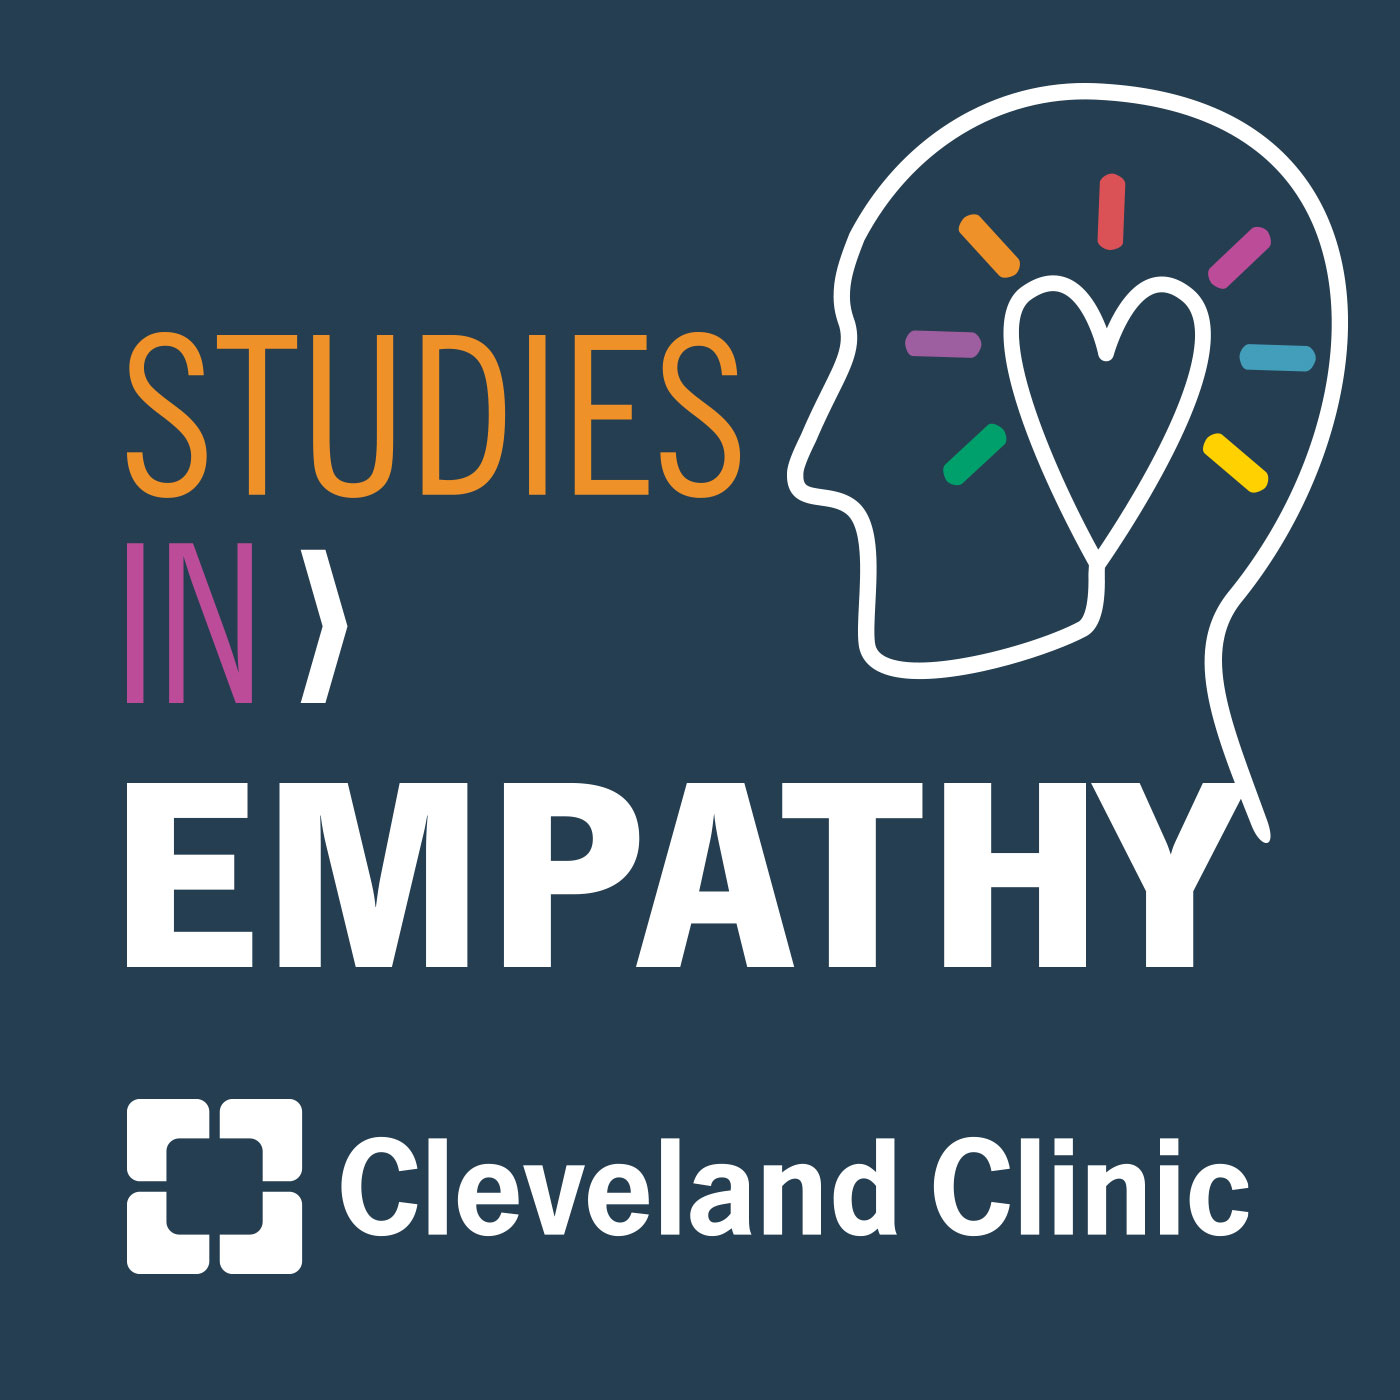 Studies in Empathy